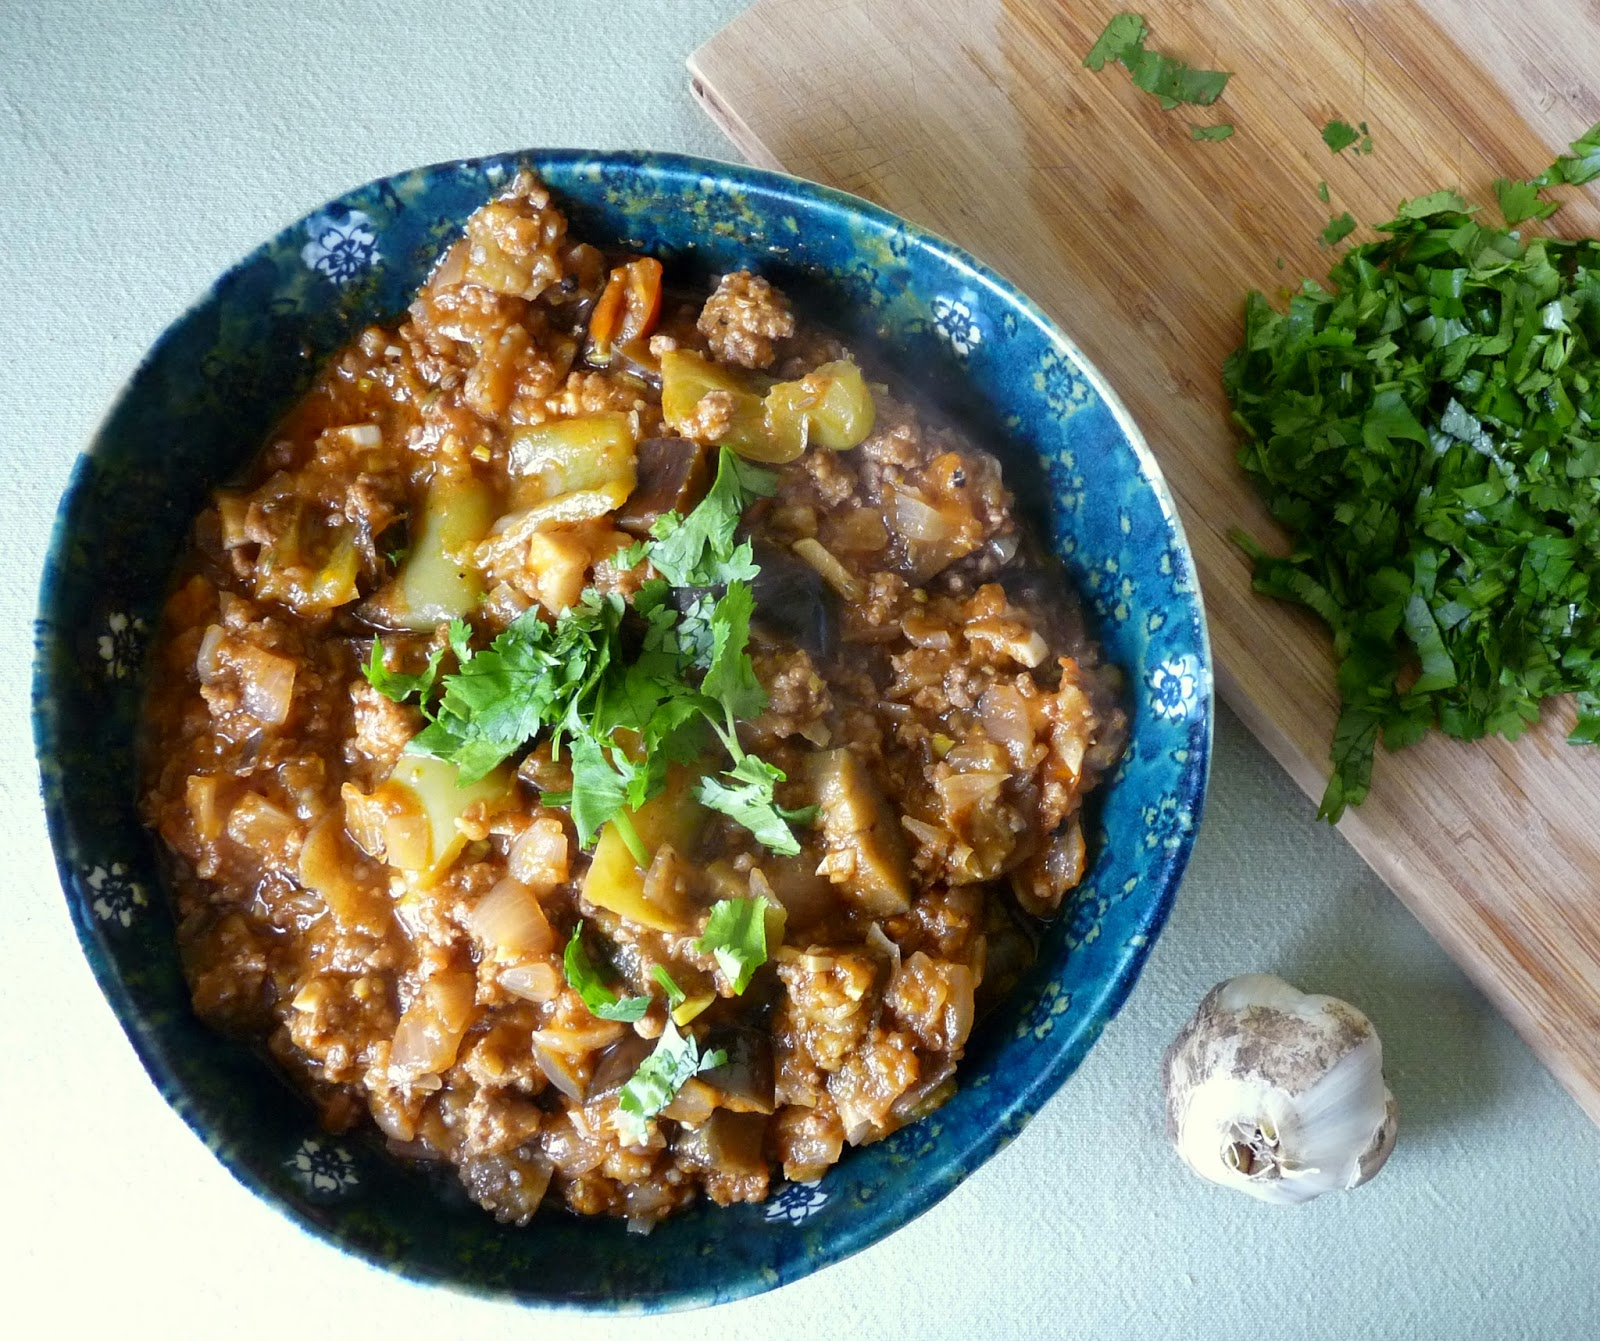 Lamb Stew with Eggplant & Peppers